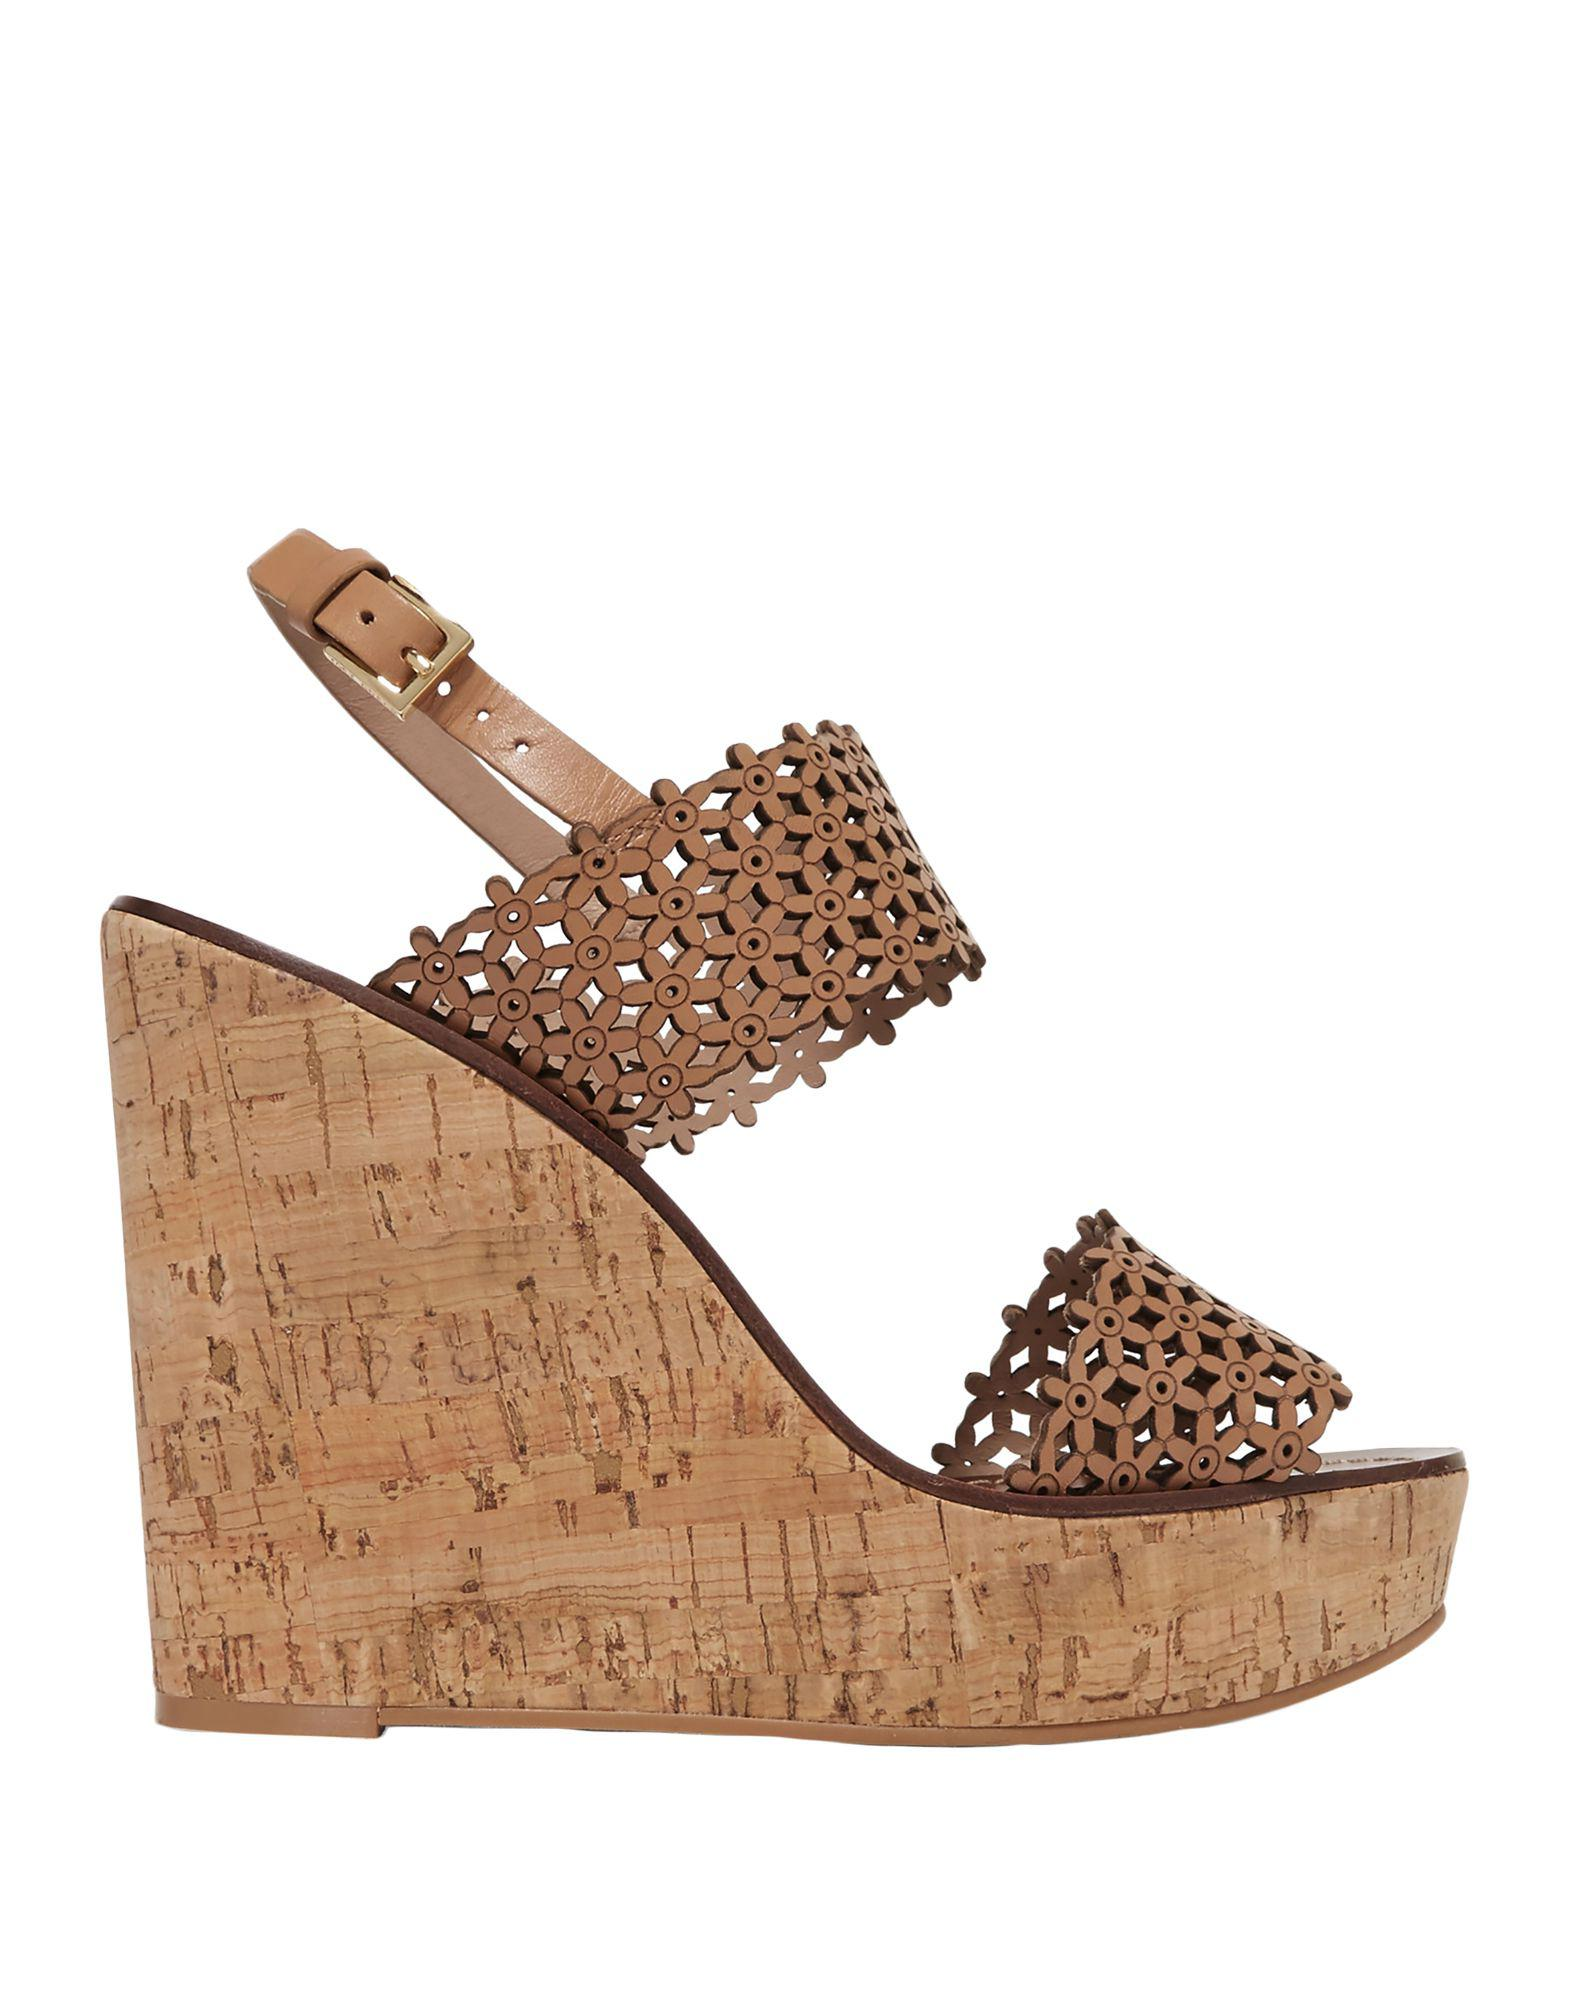 5015307be Lyst - Tory Burch Sandals in Brown